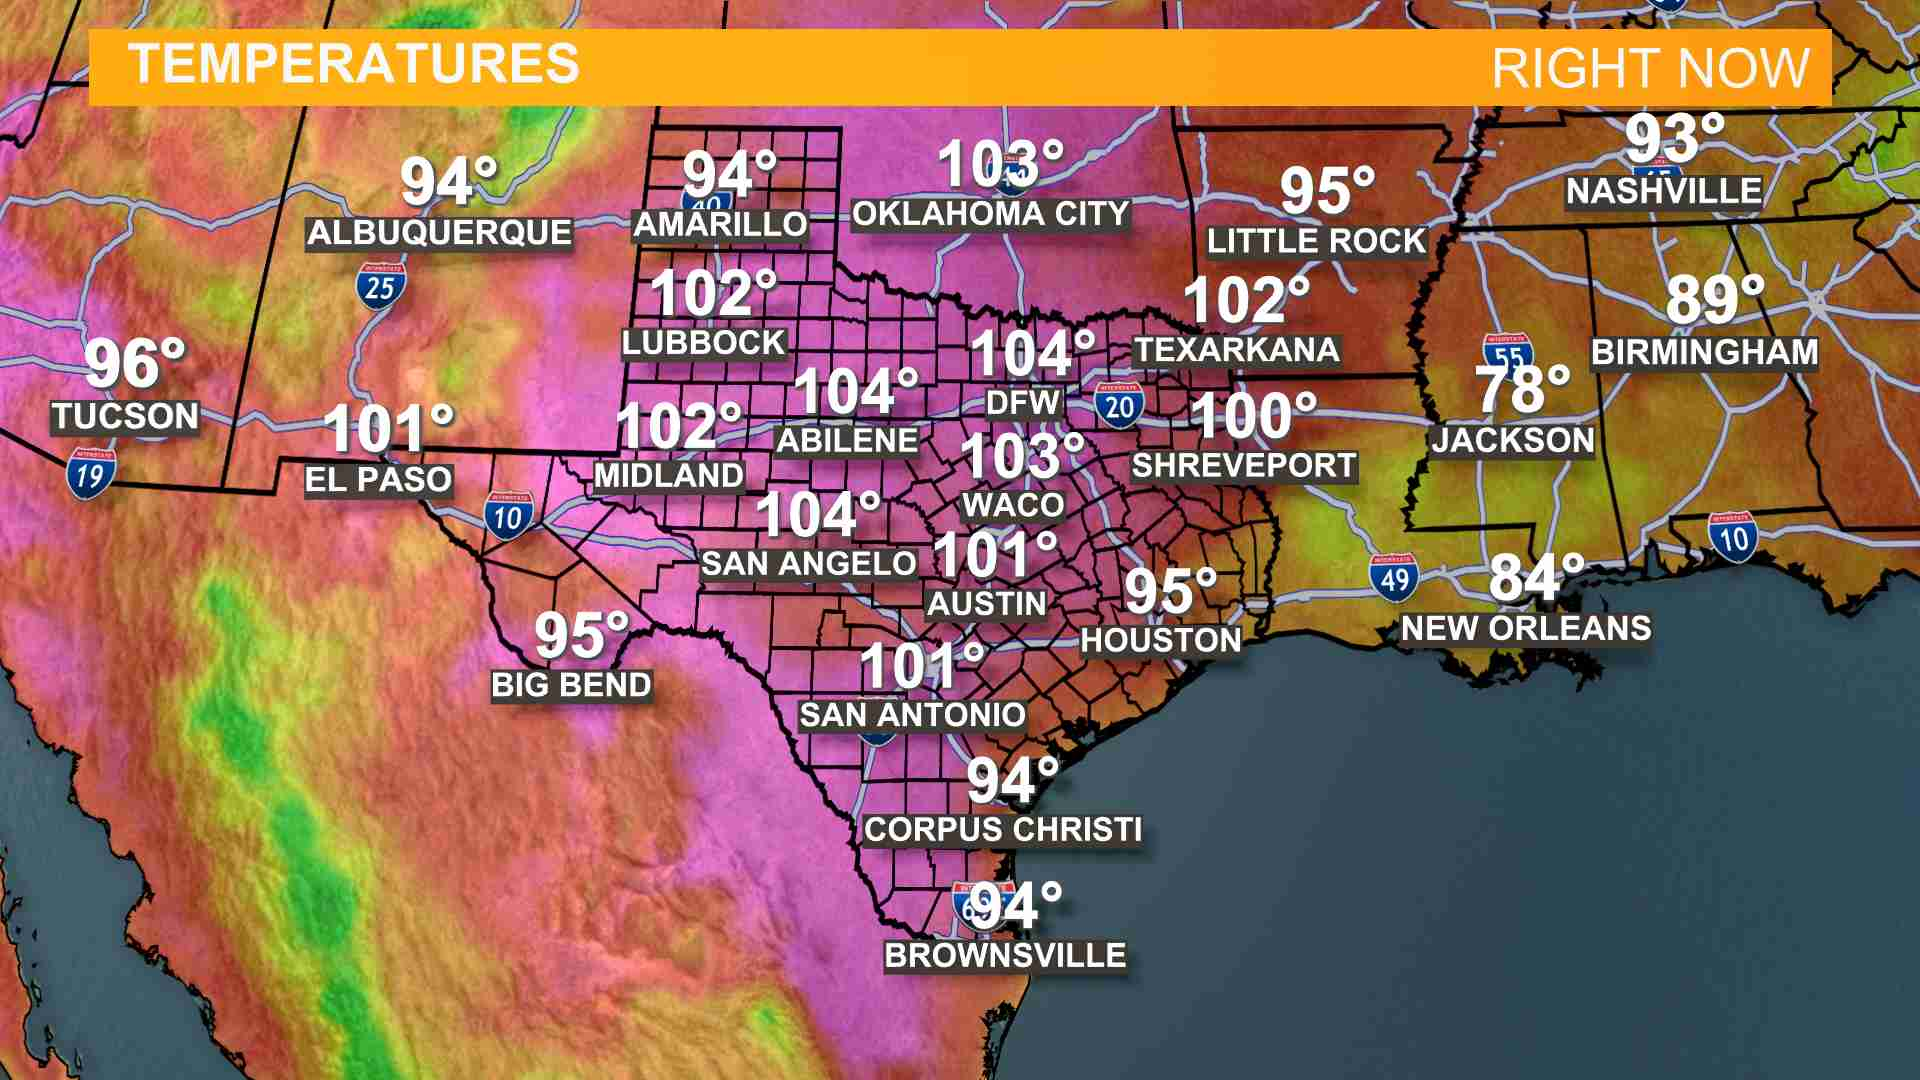 Little Rock Weather Map.Weather Maps On Kcentv In Waco